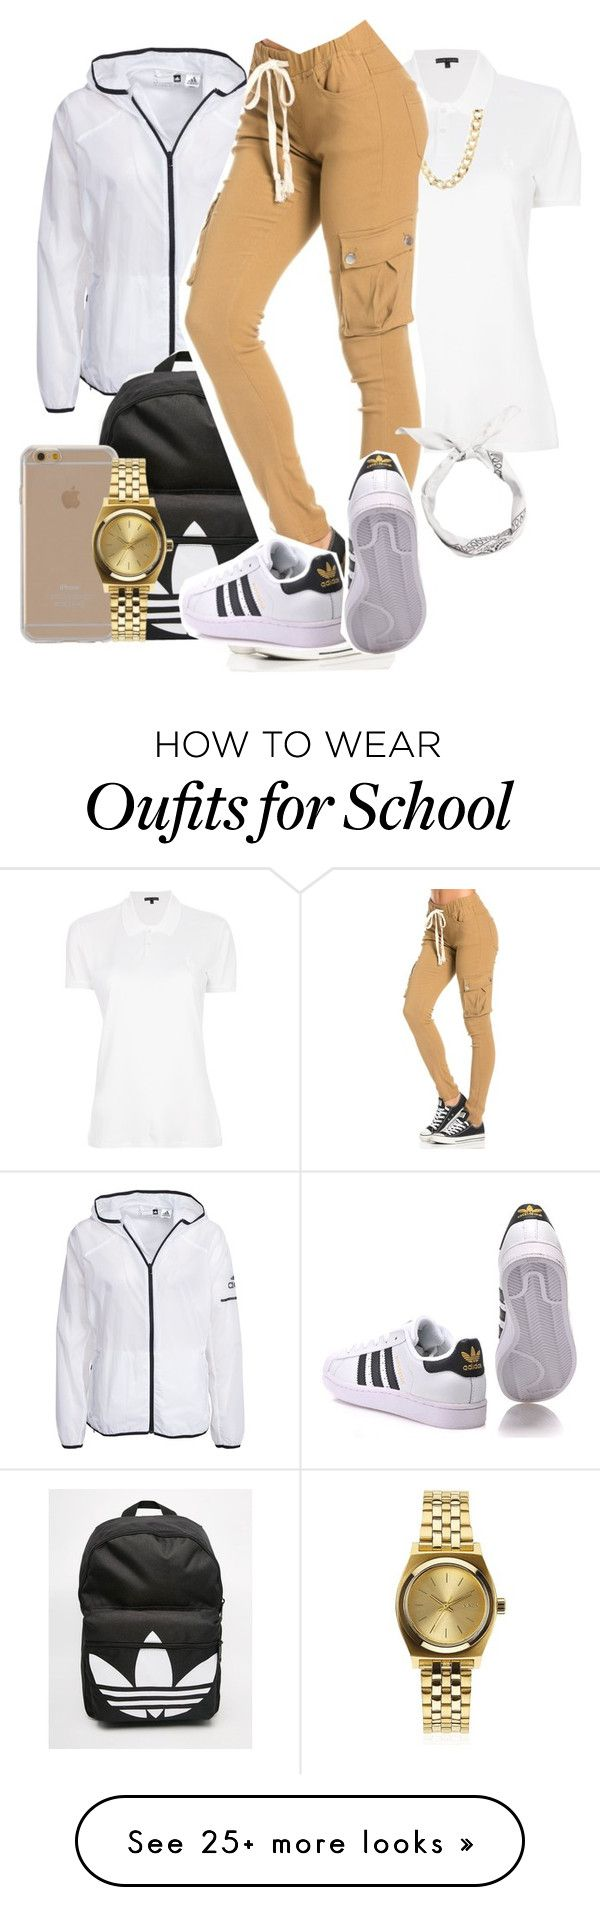 """""""School flow"""" by kitty-ma on Polyvore featuring Ralph Lauren, adidas, Charlotte Russe, adidas Originals, Agent 18 and Nixon"""